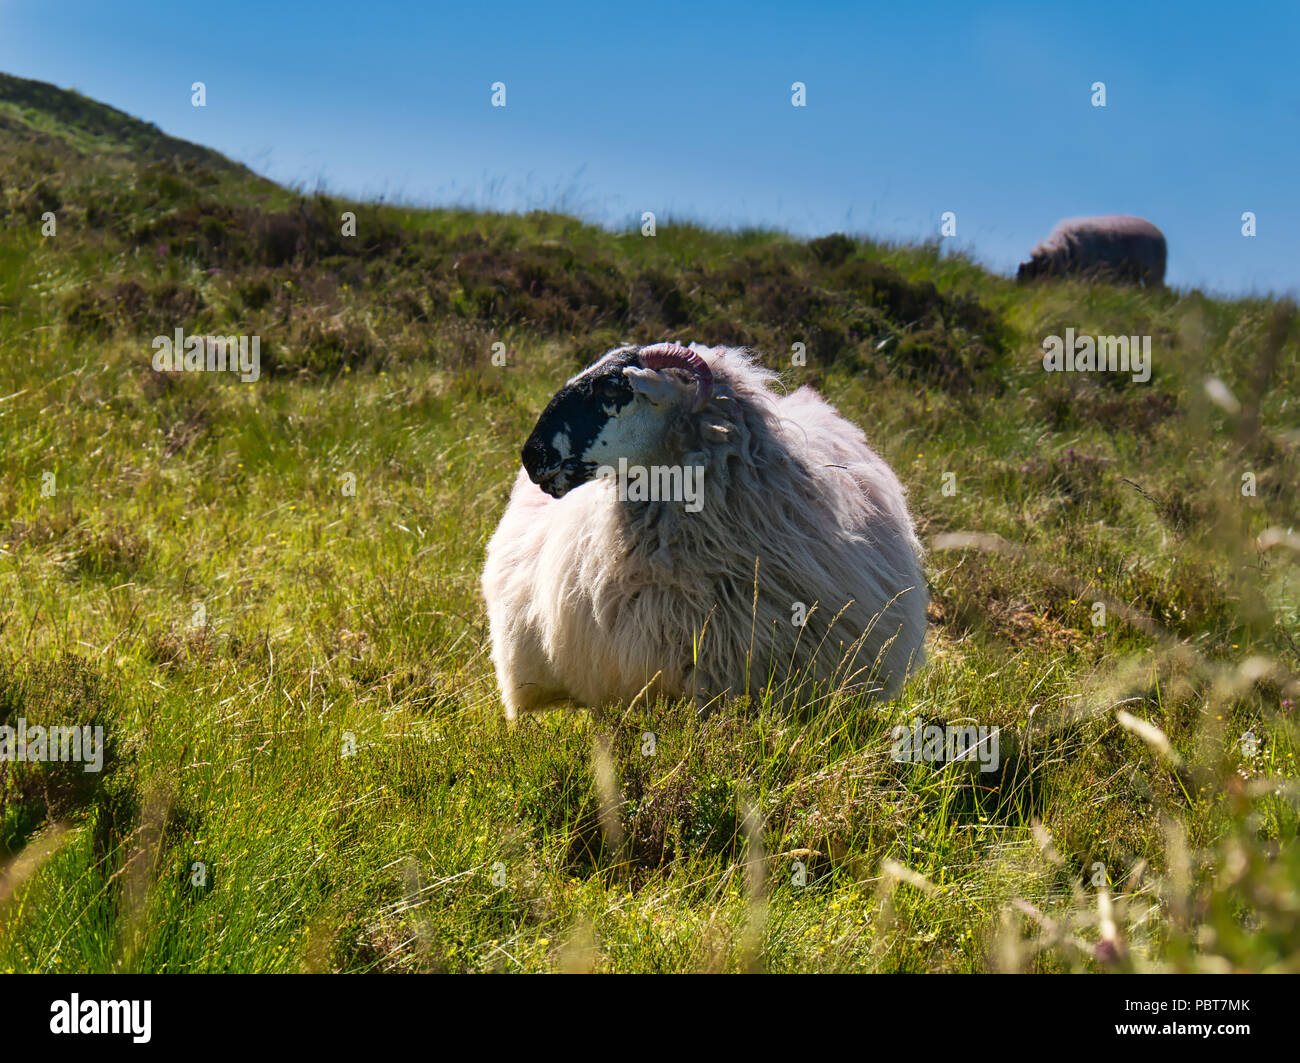 Sheep with thick fur in the middle of green and tall grass in the mountains of Ireland - Stock Image